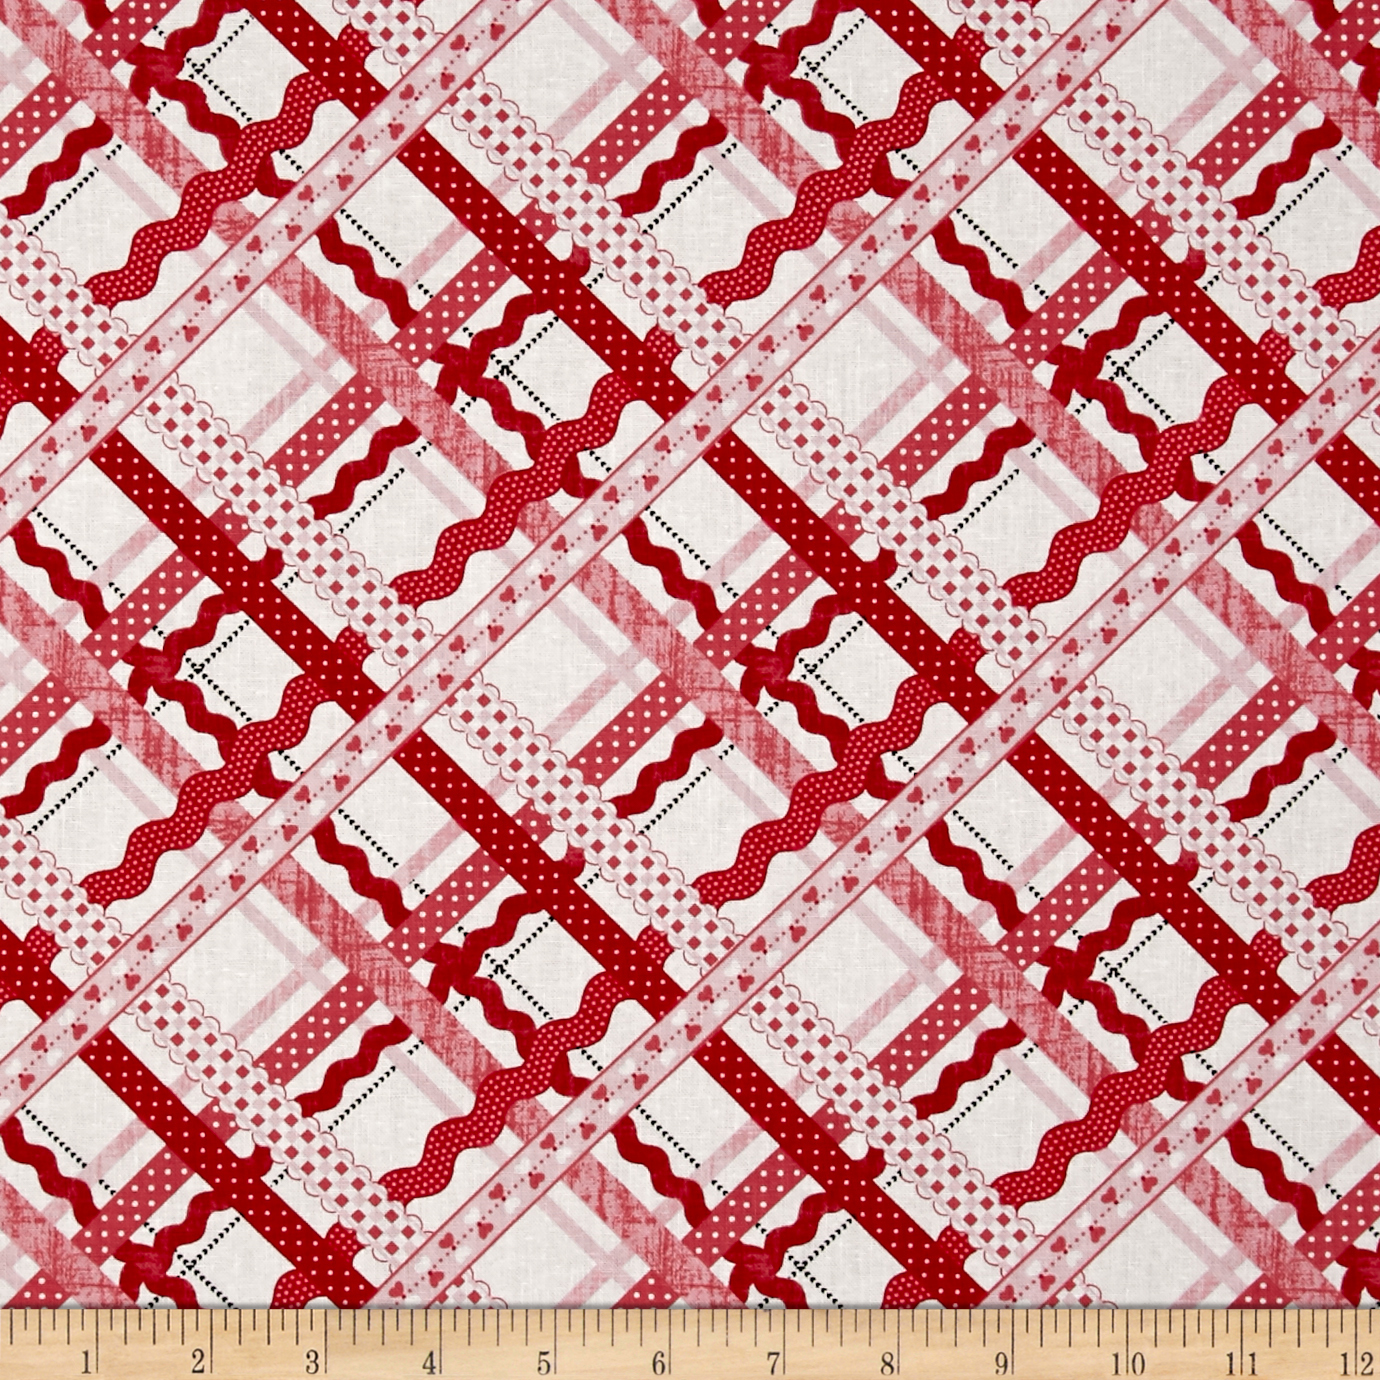 Dear Heart Rickrack Plaid White Pink Fabric by Studio E in USA